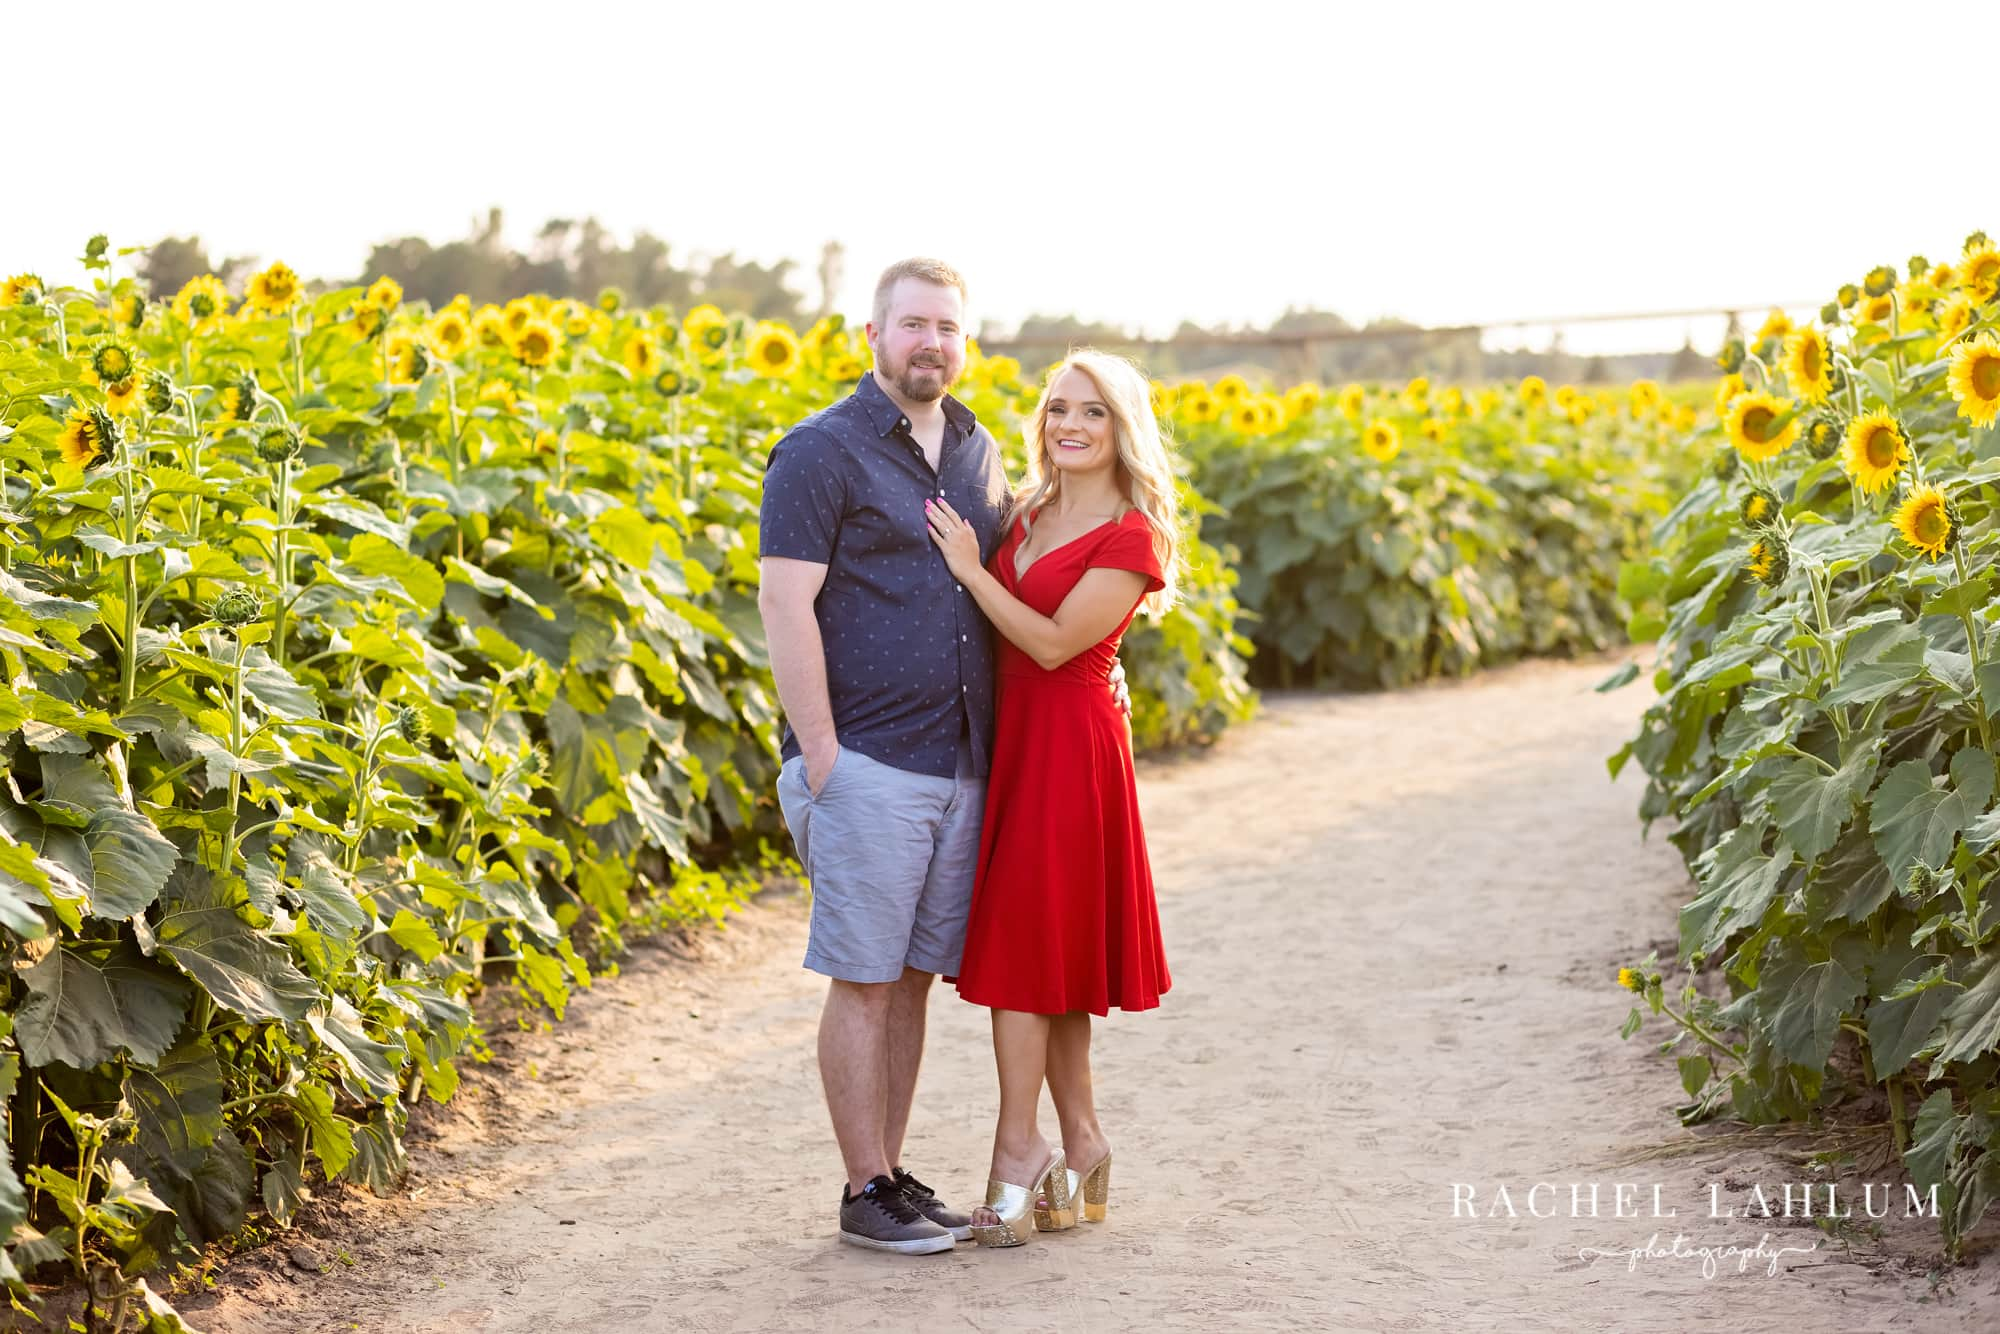 Engaged couple pose for a portrait on a trail cutting through sunflower fields.